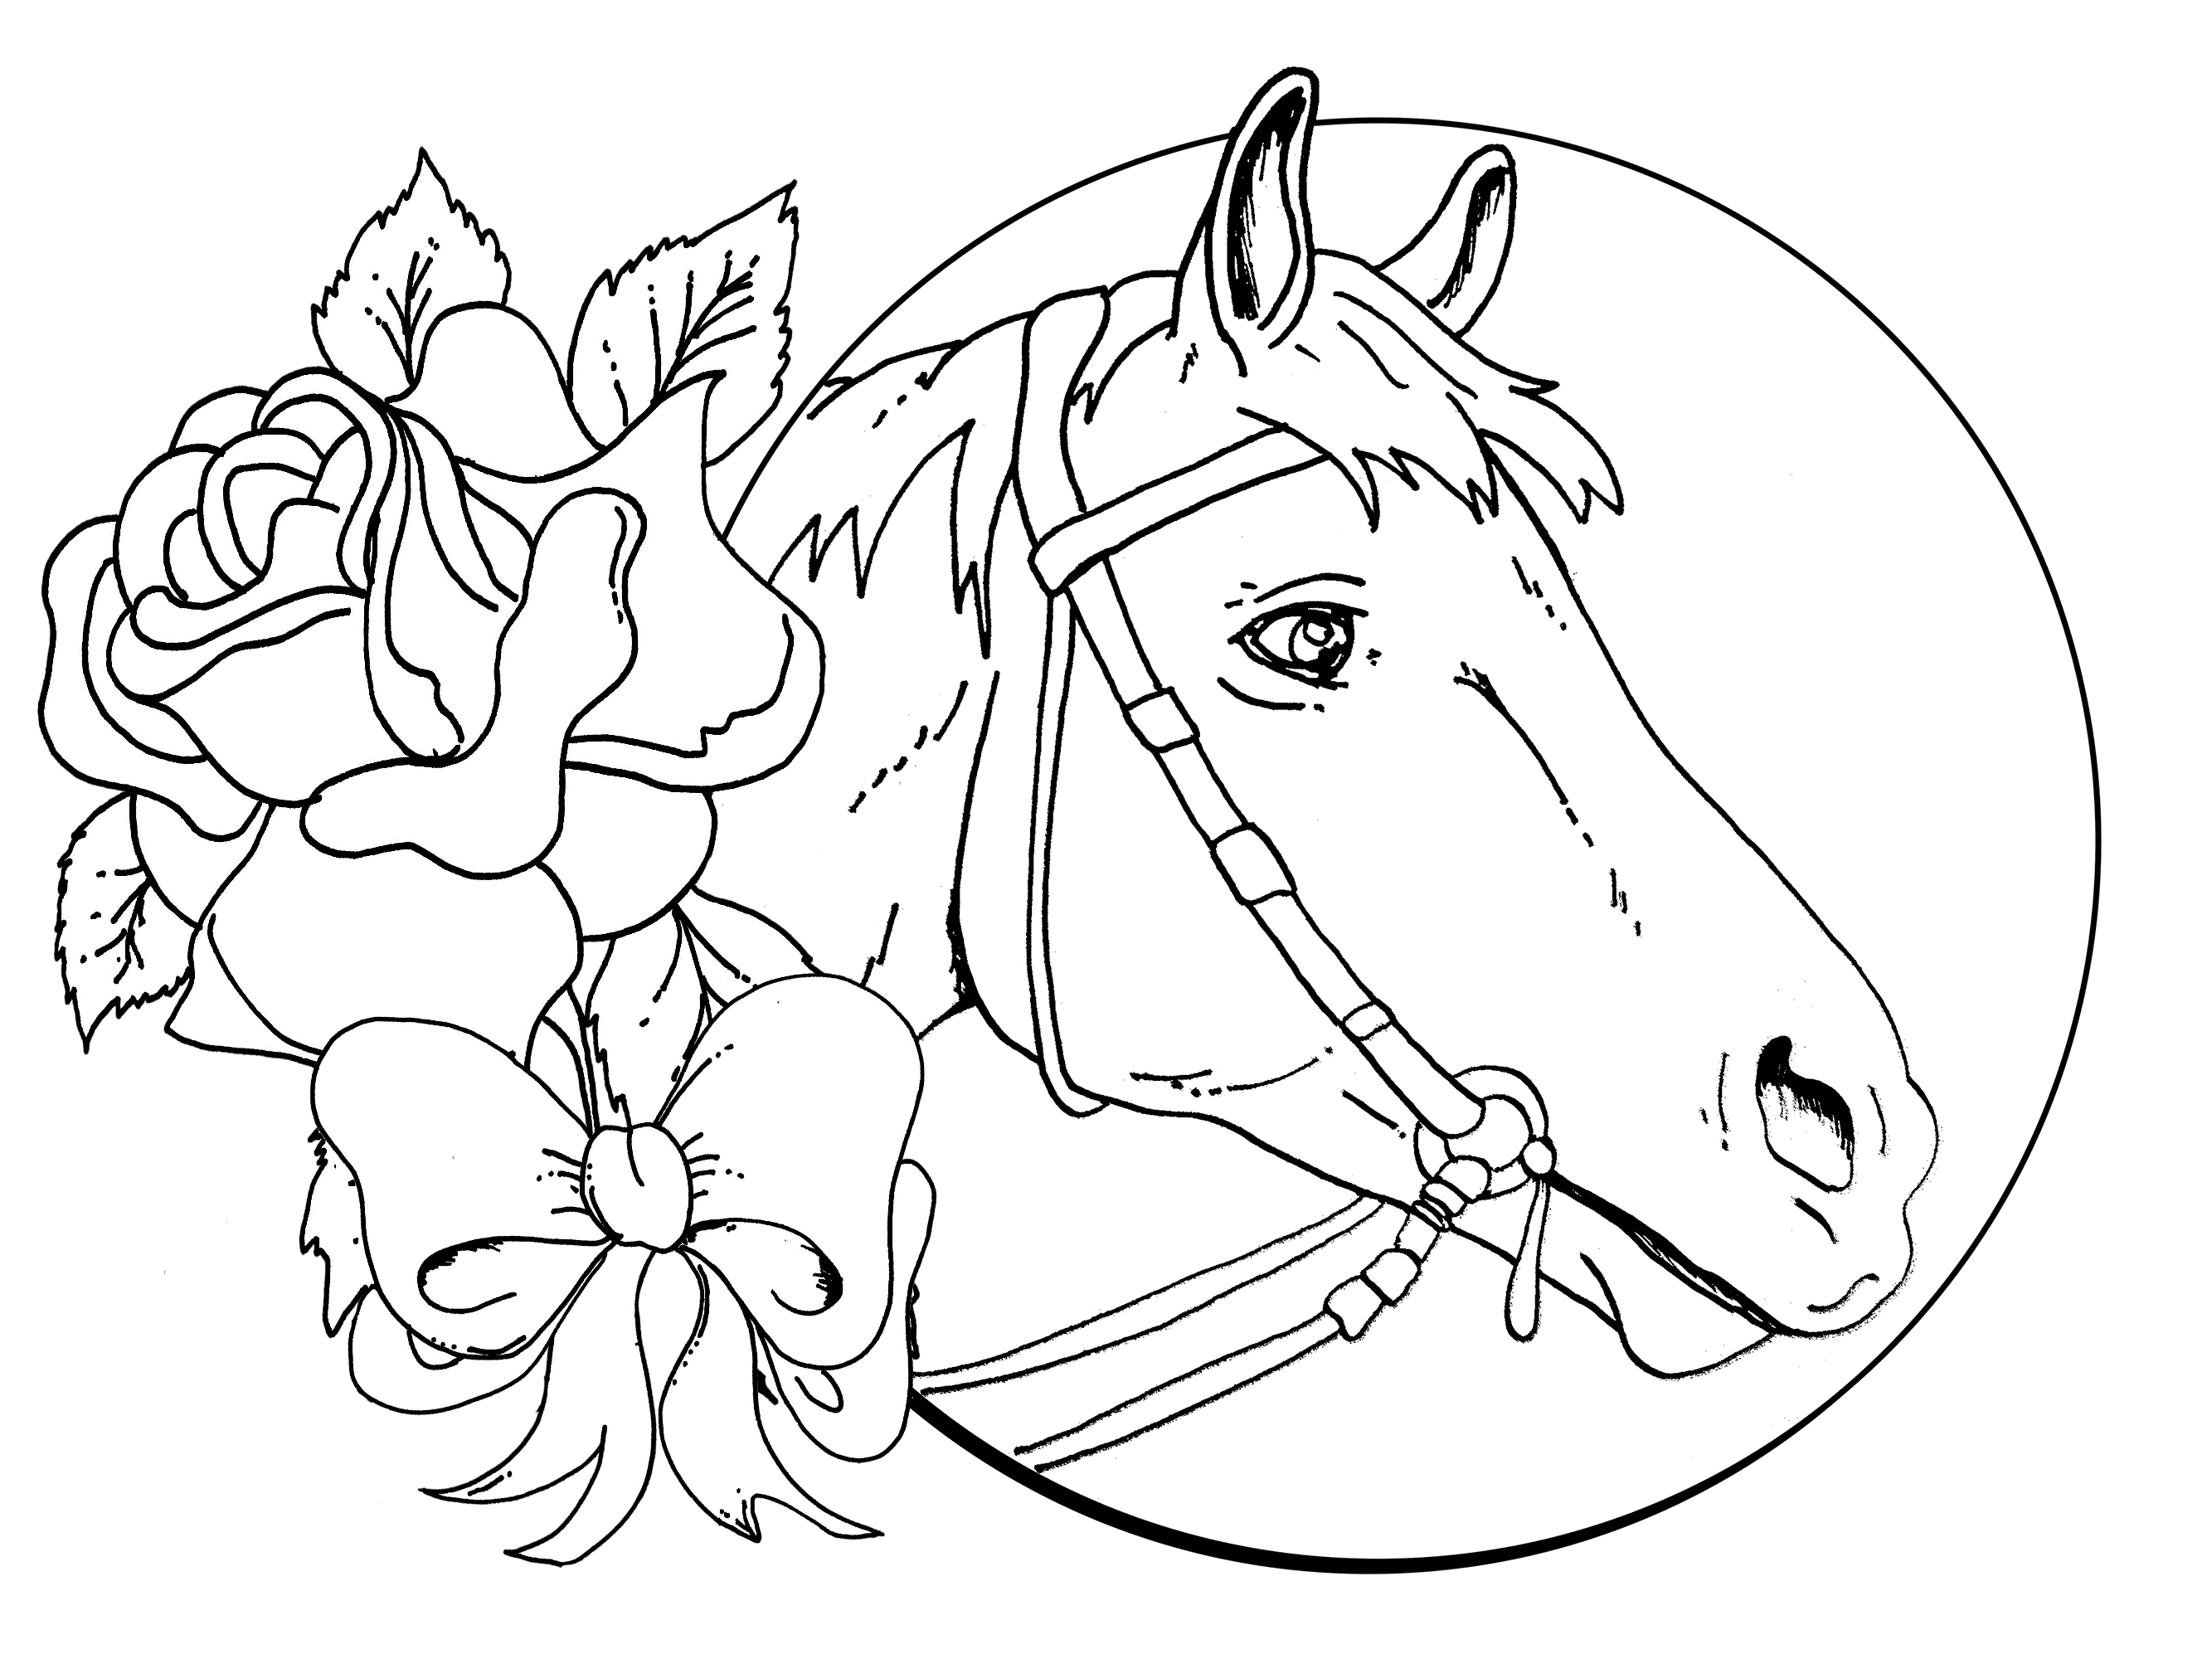 Coloring: Coloring Pages For Girls 2019: Best, Cool, Funny